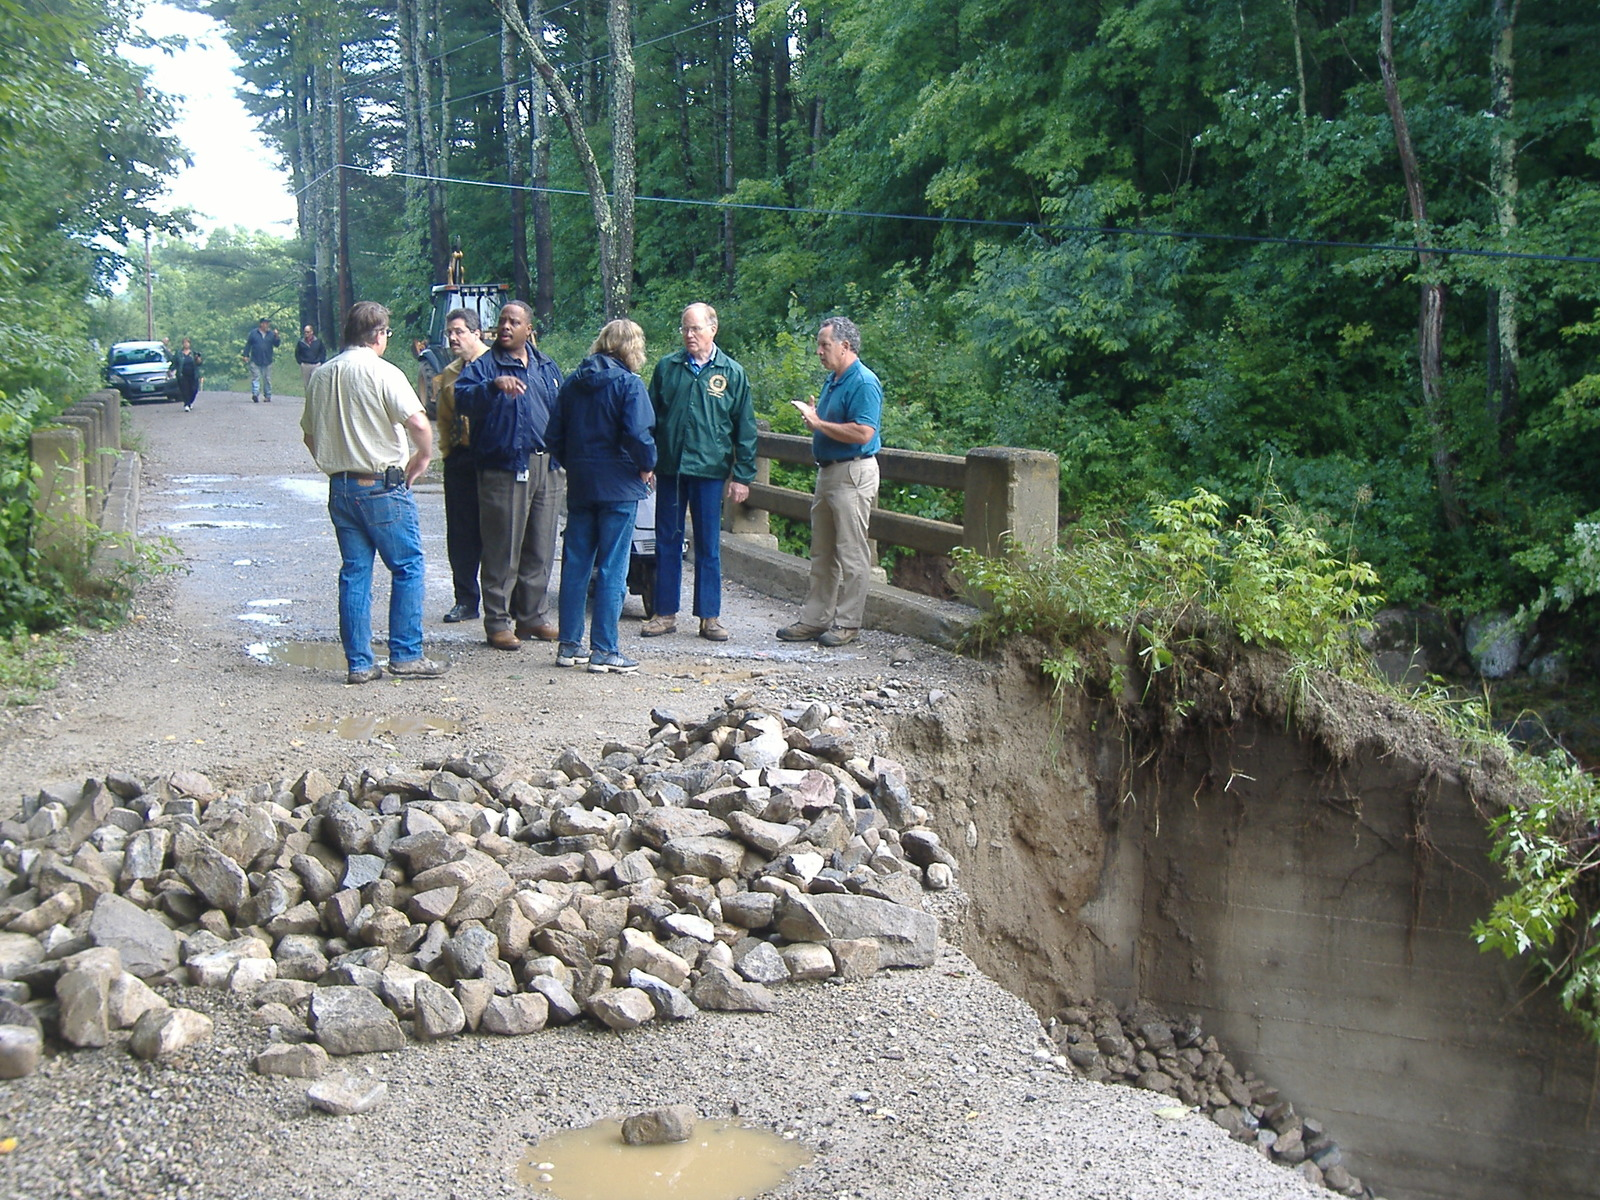 Ripton, Vermont, August 7, 2008 -- Vermont Governor Jim Douglas and FEMA FCO Phil Parr join local officials in surveying a damaged bridge.  Several days of heavy rains caused flash flooding in much of Central Vermont.  FEMA Photo/Brian Hvinden